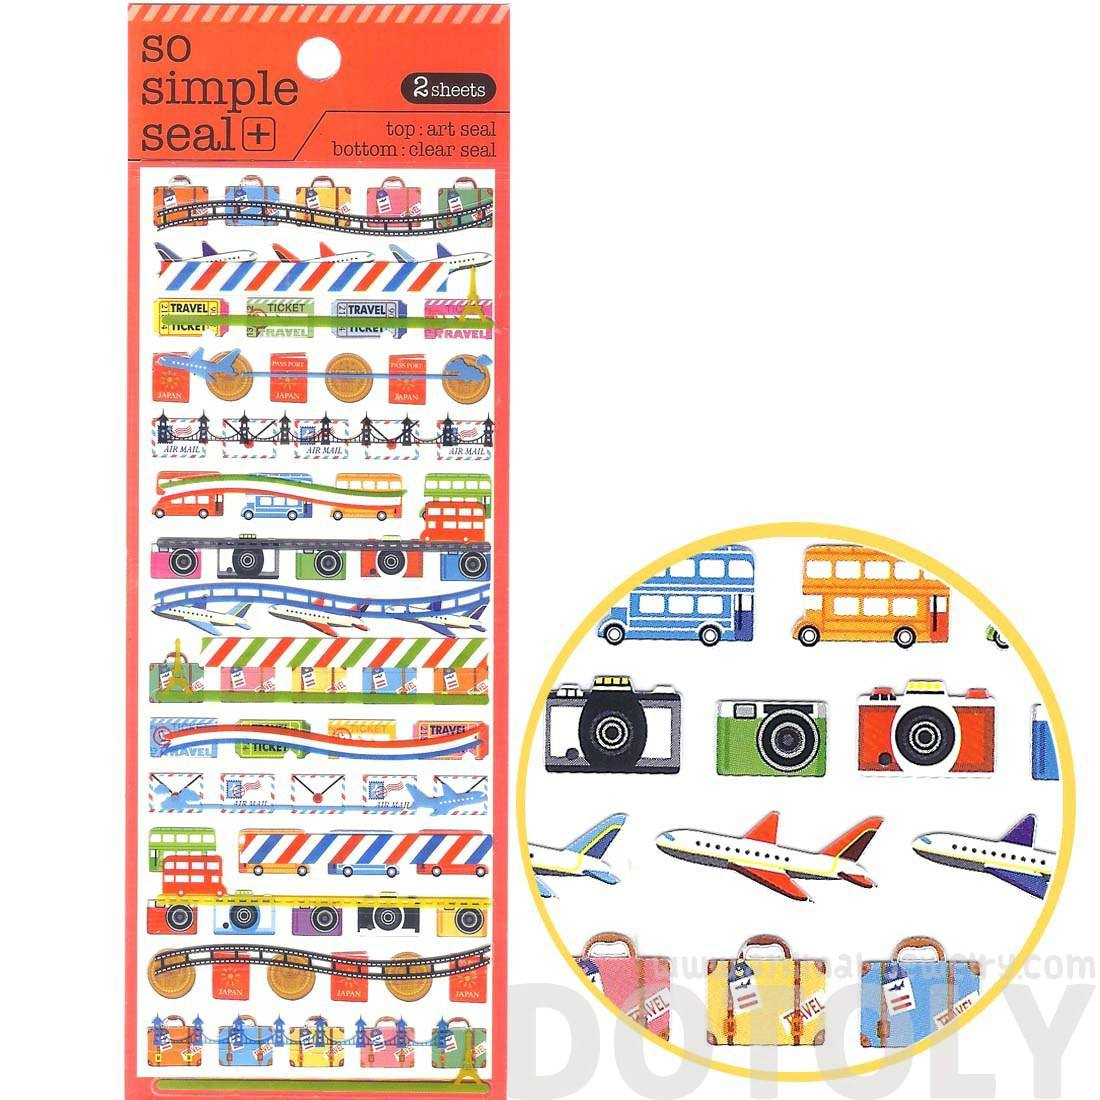 Airplanes Camera Tickets Luggage Travel Themed Stickers for Decorating